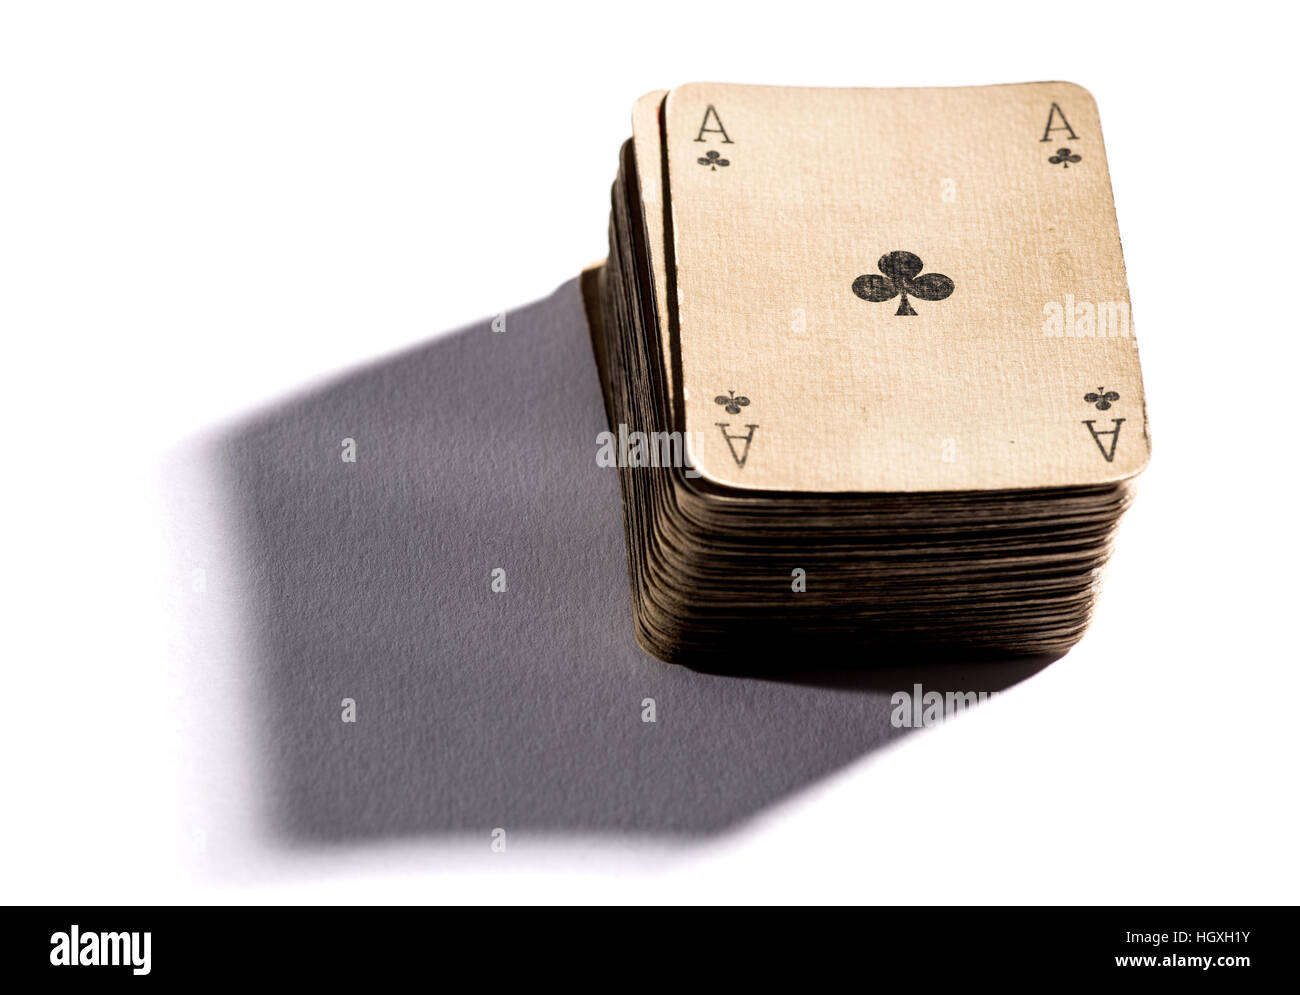 Deck of vintage old playing cards of faded withered paper with the ace of clubs on the top, dropping shadow on white - Stock Image